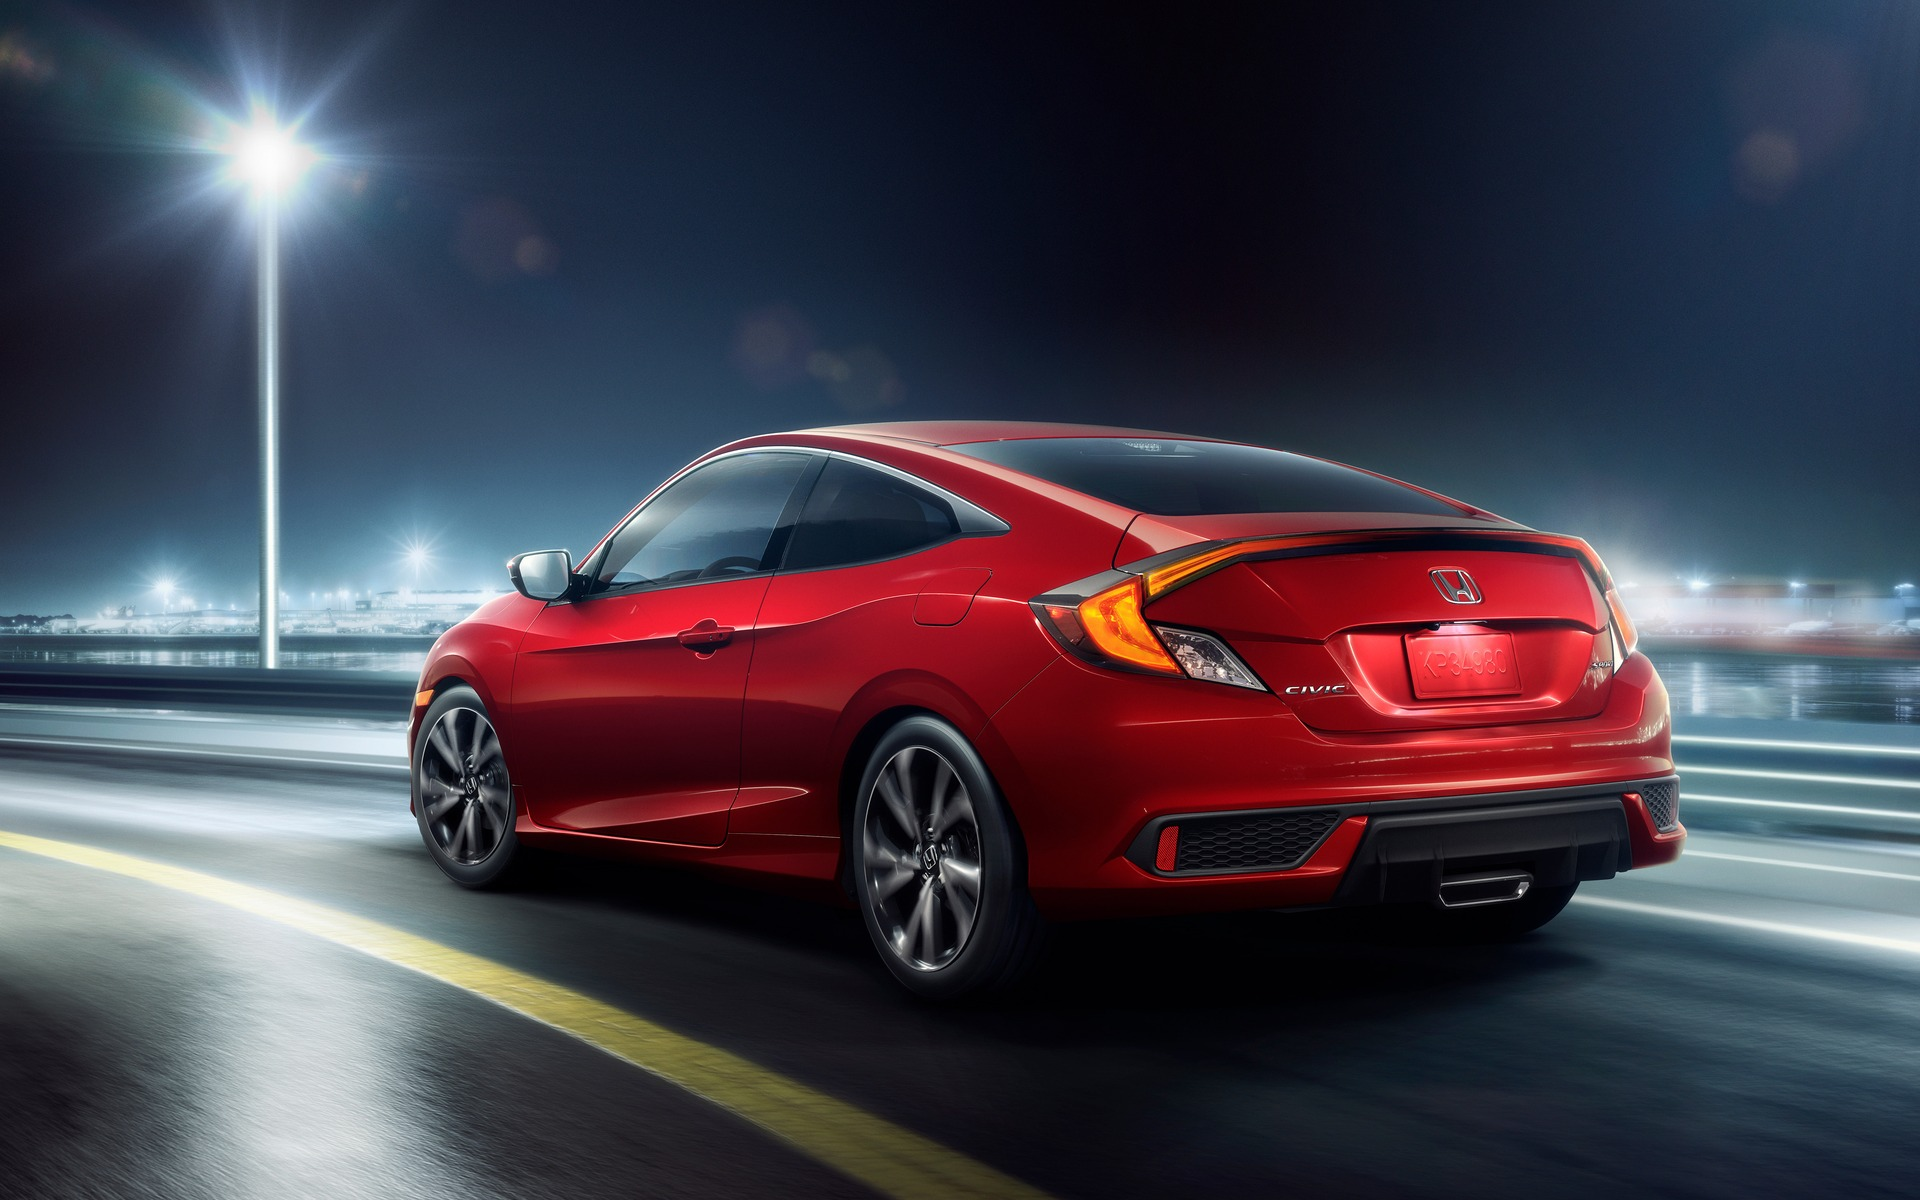 Sedan Vs Coupe >> 2019 Honda Civic Sedan and Coupe: Refreshed Styling and New Sport Trim - 3/3